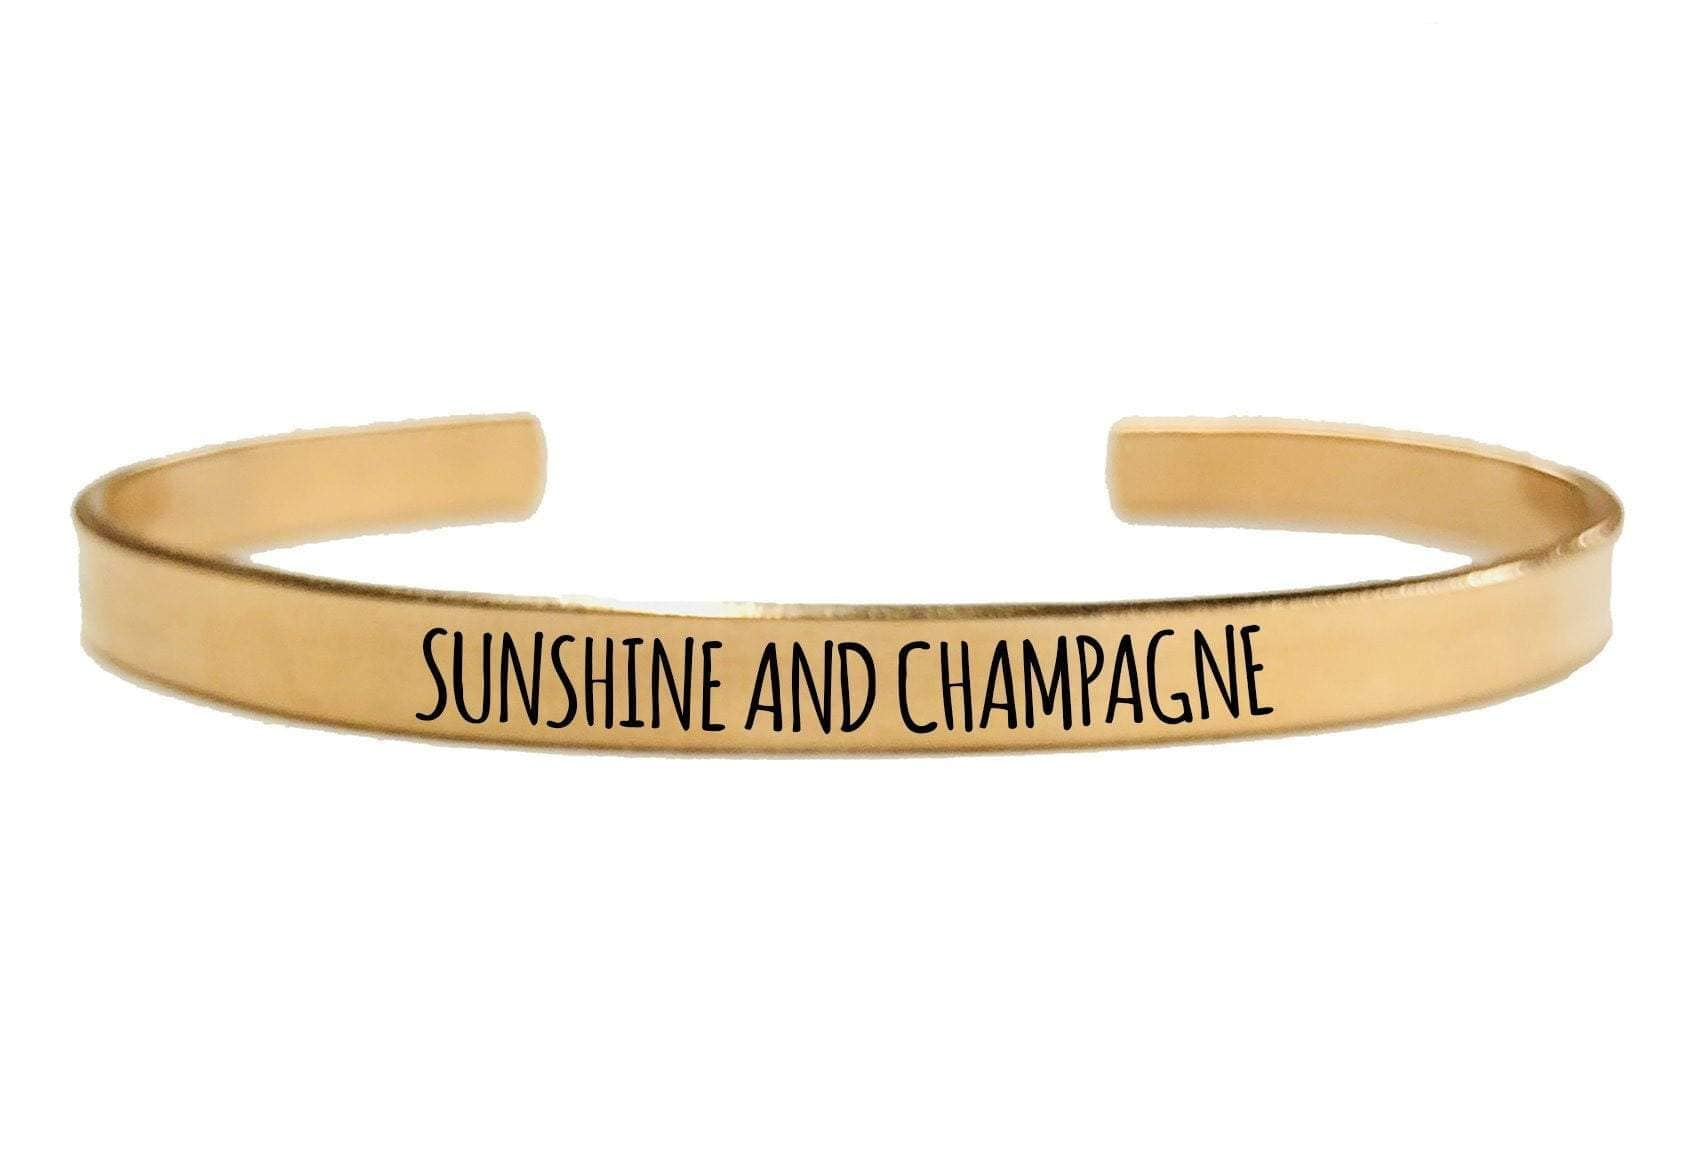 SUNSHINES AND CHAMPAGNE CUFF BRACELET